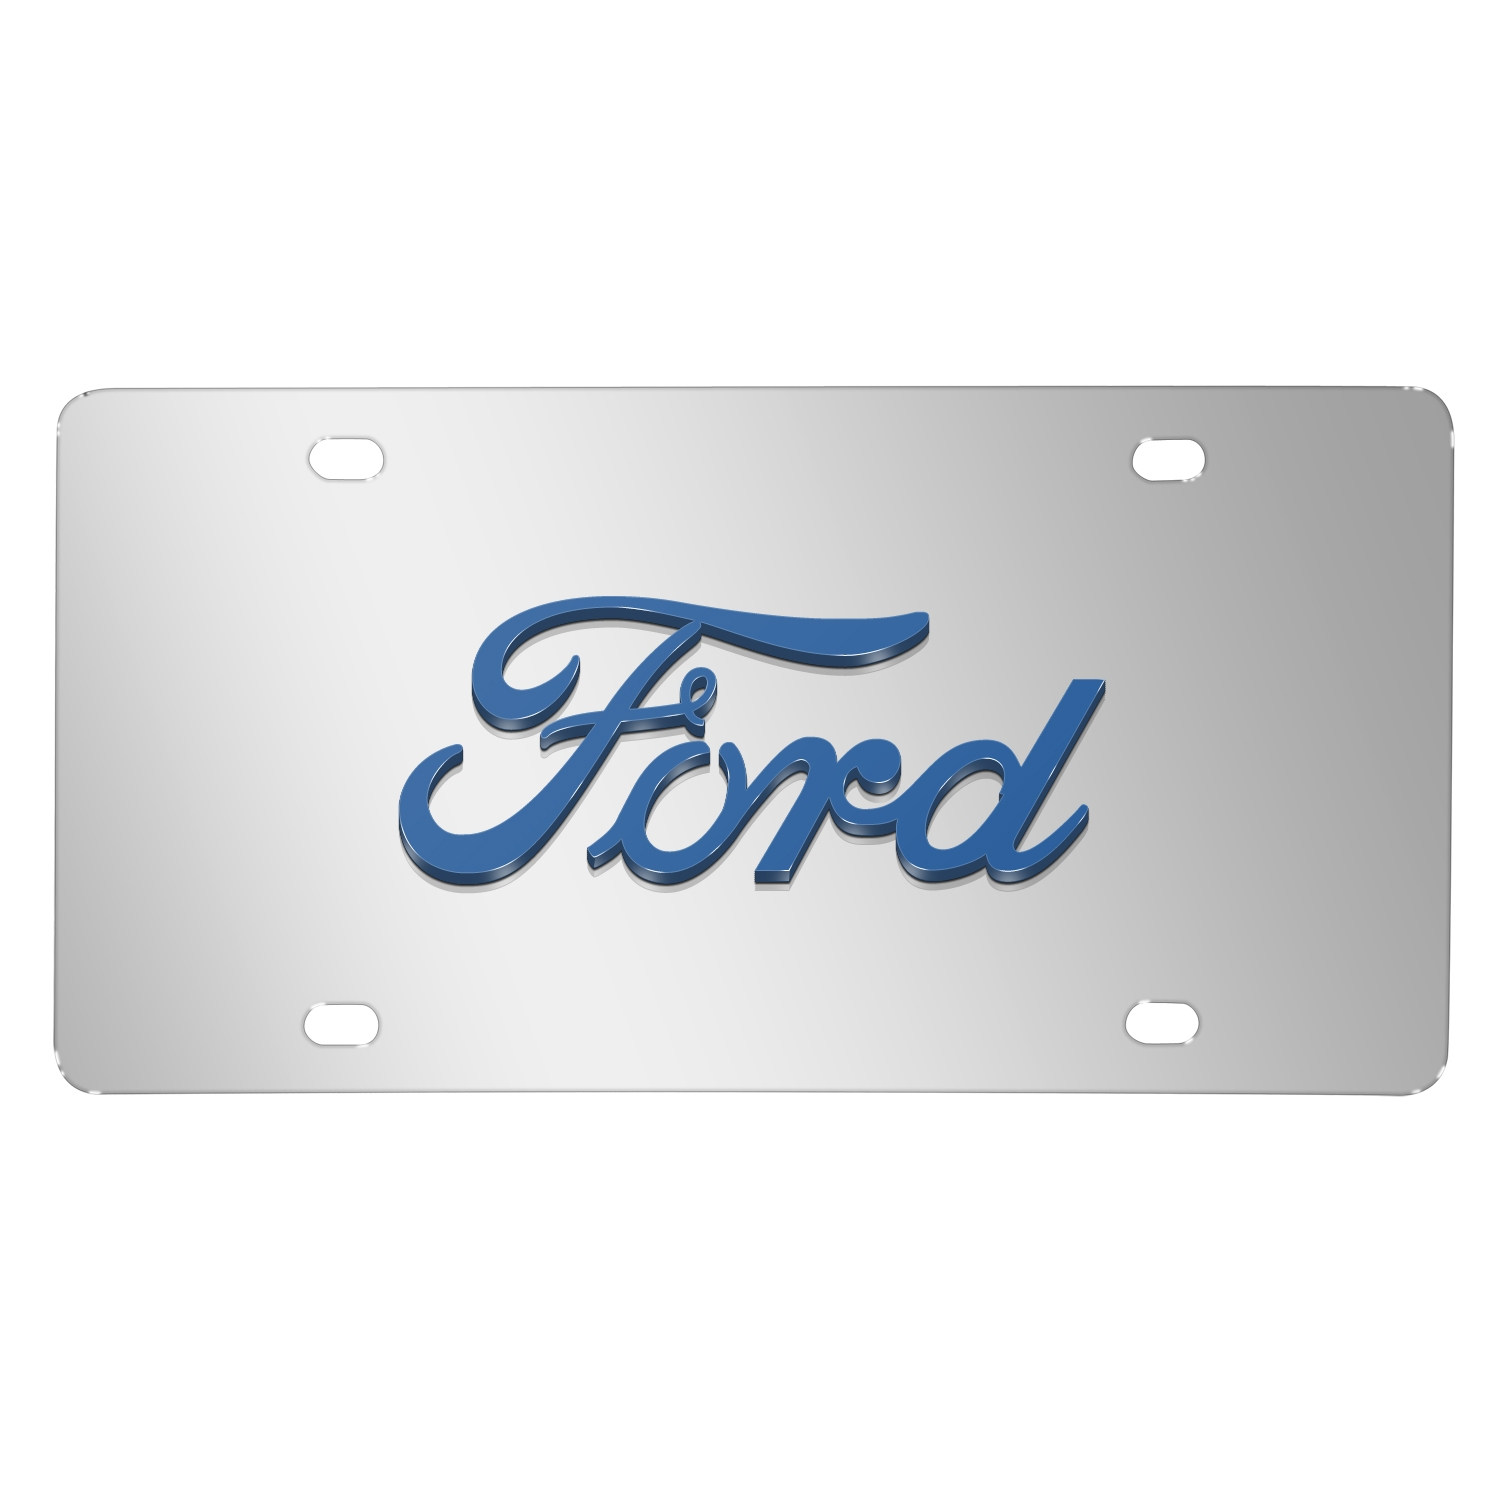 Ford 3D Script Logo in Blue on Chrome Stainless Steel License Plate